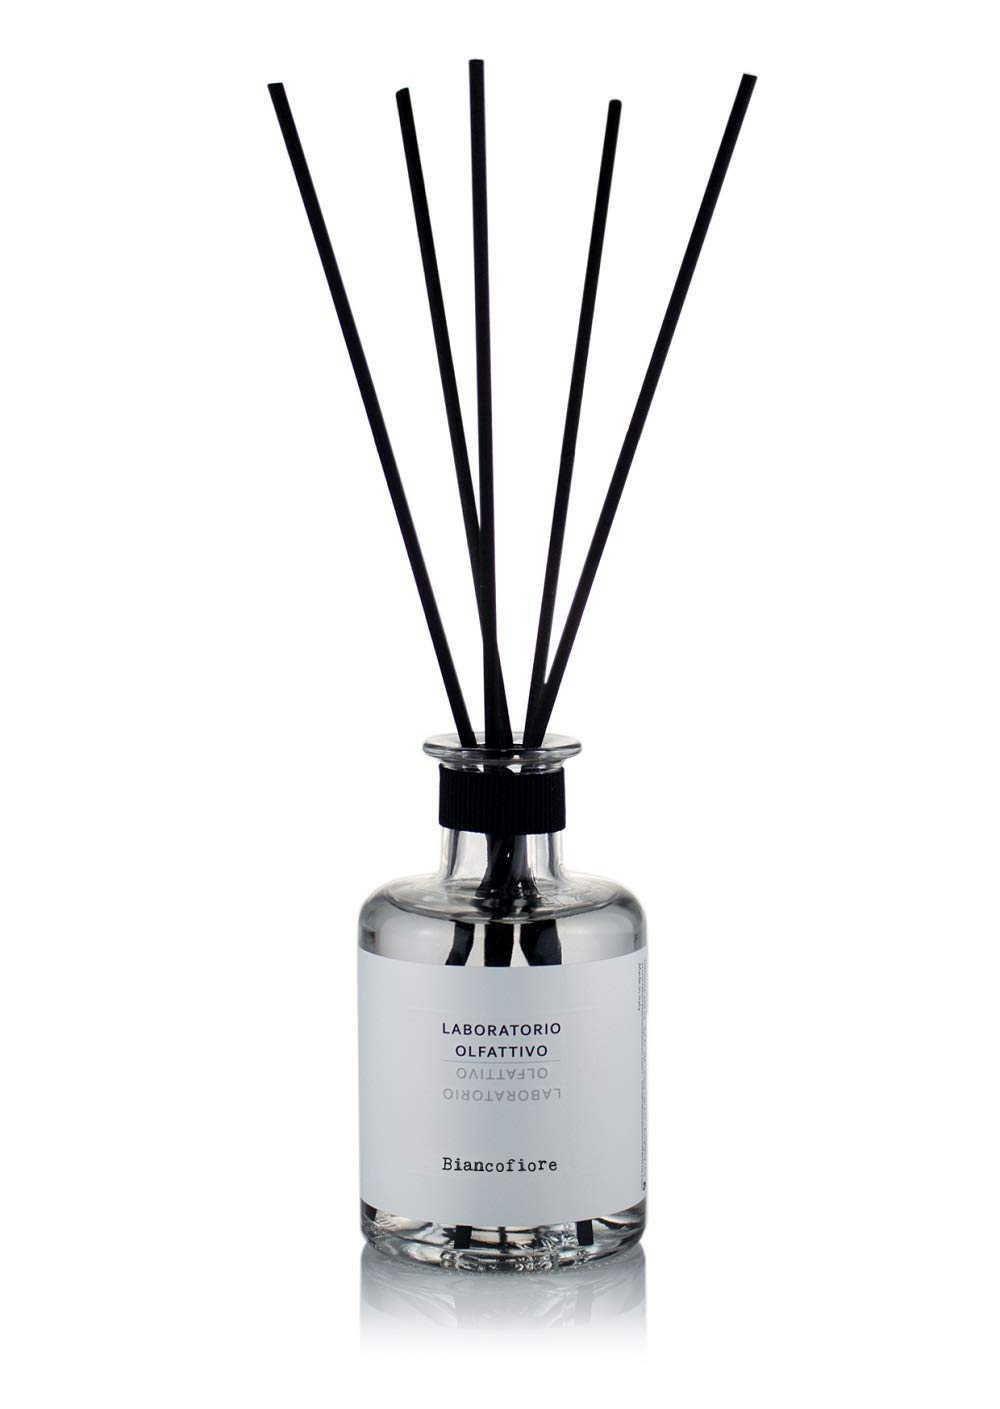 Laboratorio Olfattivo Fragrance Diffuser Biancofiore 200mL by Laboratorio Olfattivo (Image #1)